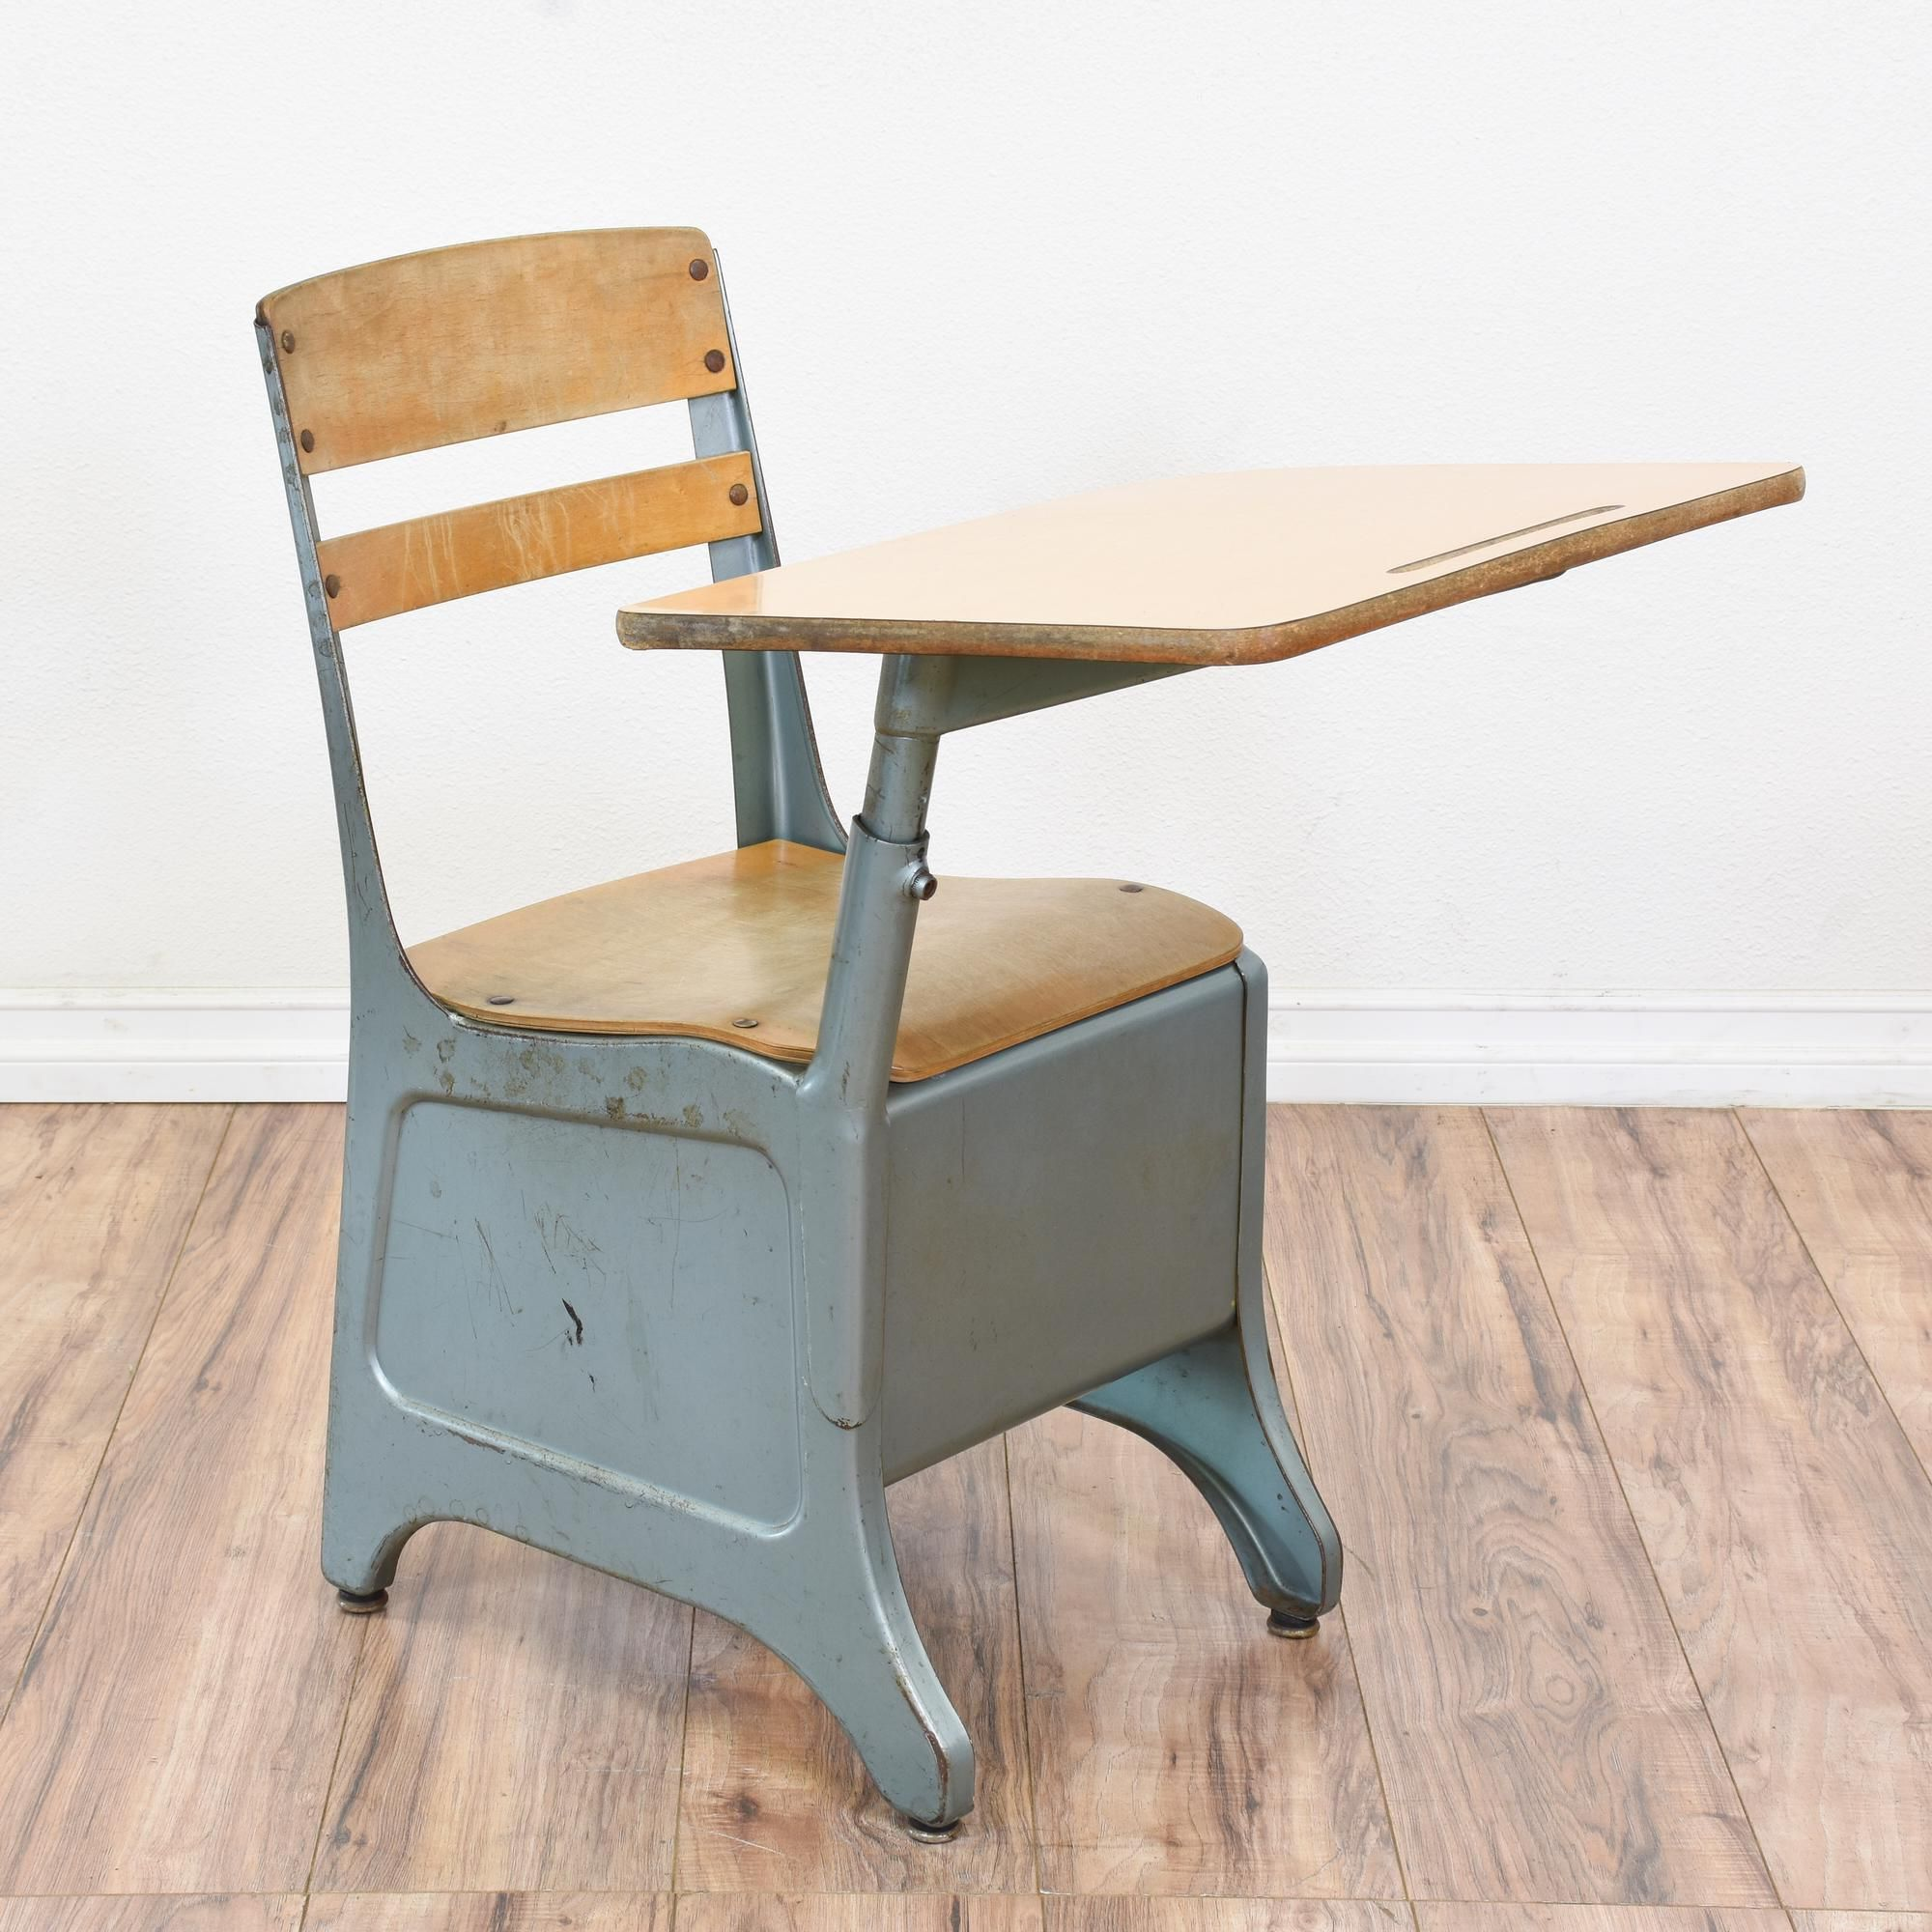 of with attached wooden original mocka best stranraerfcshop new desk chair highchair